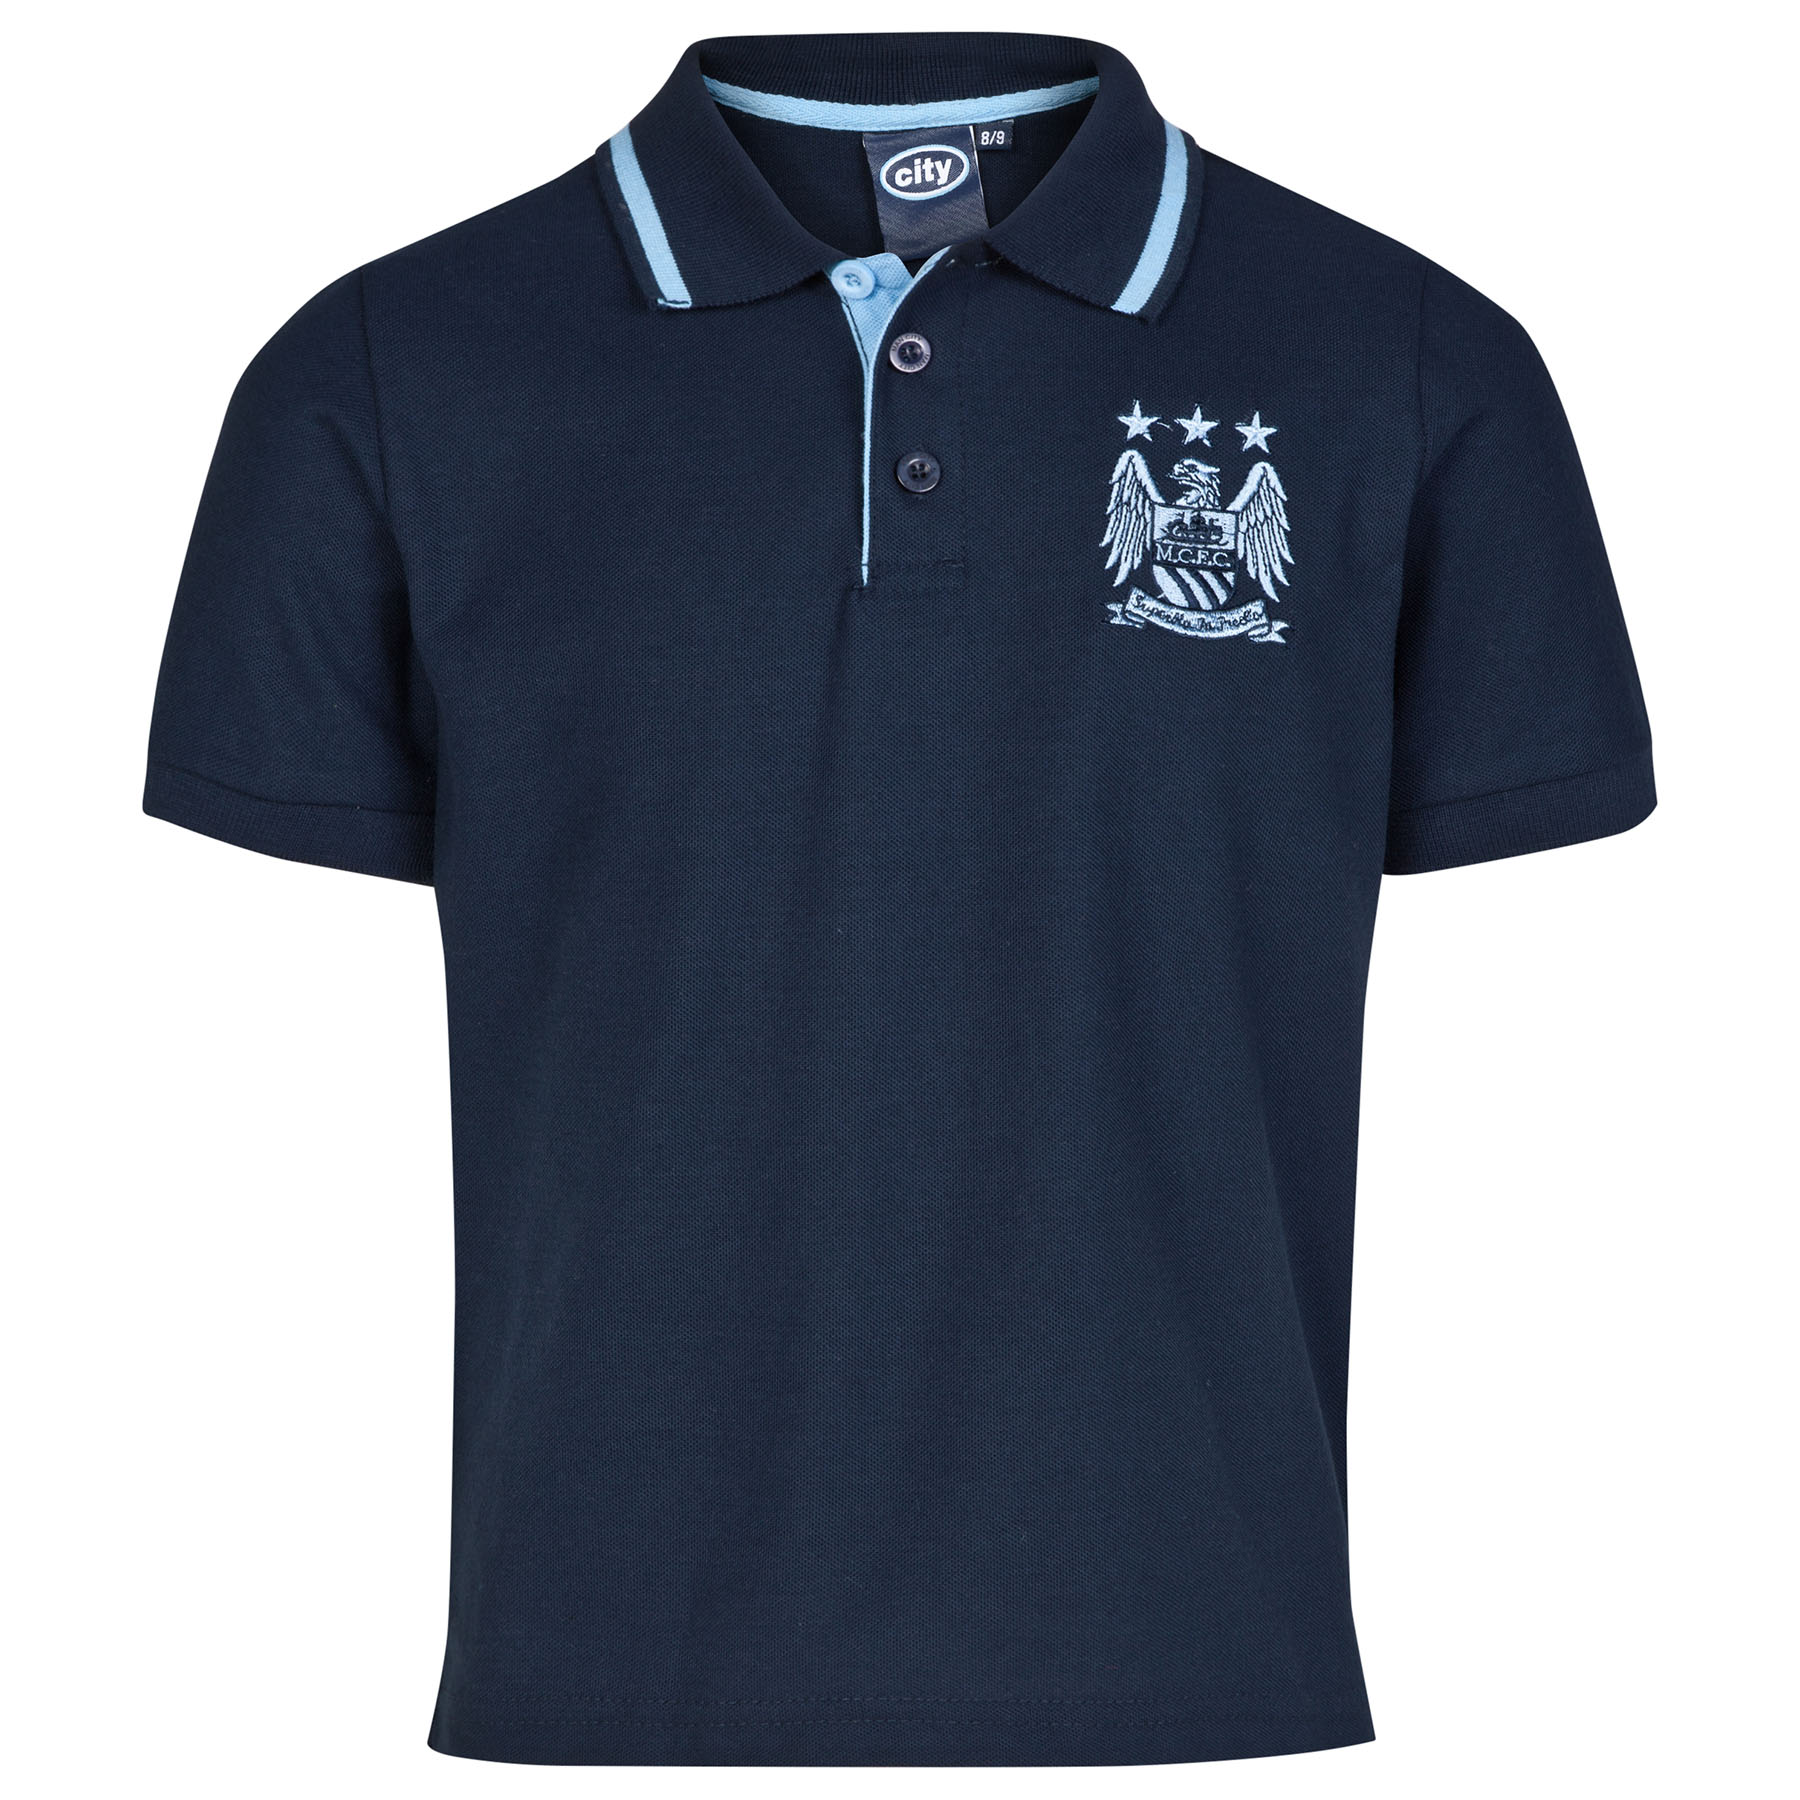 Manchester City Essential Polo Shirt - Navy - Older Boys